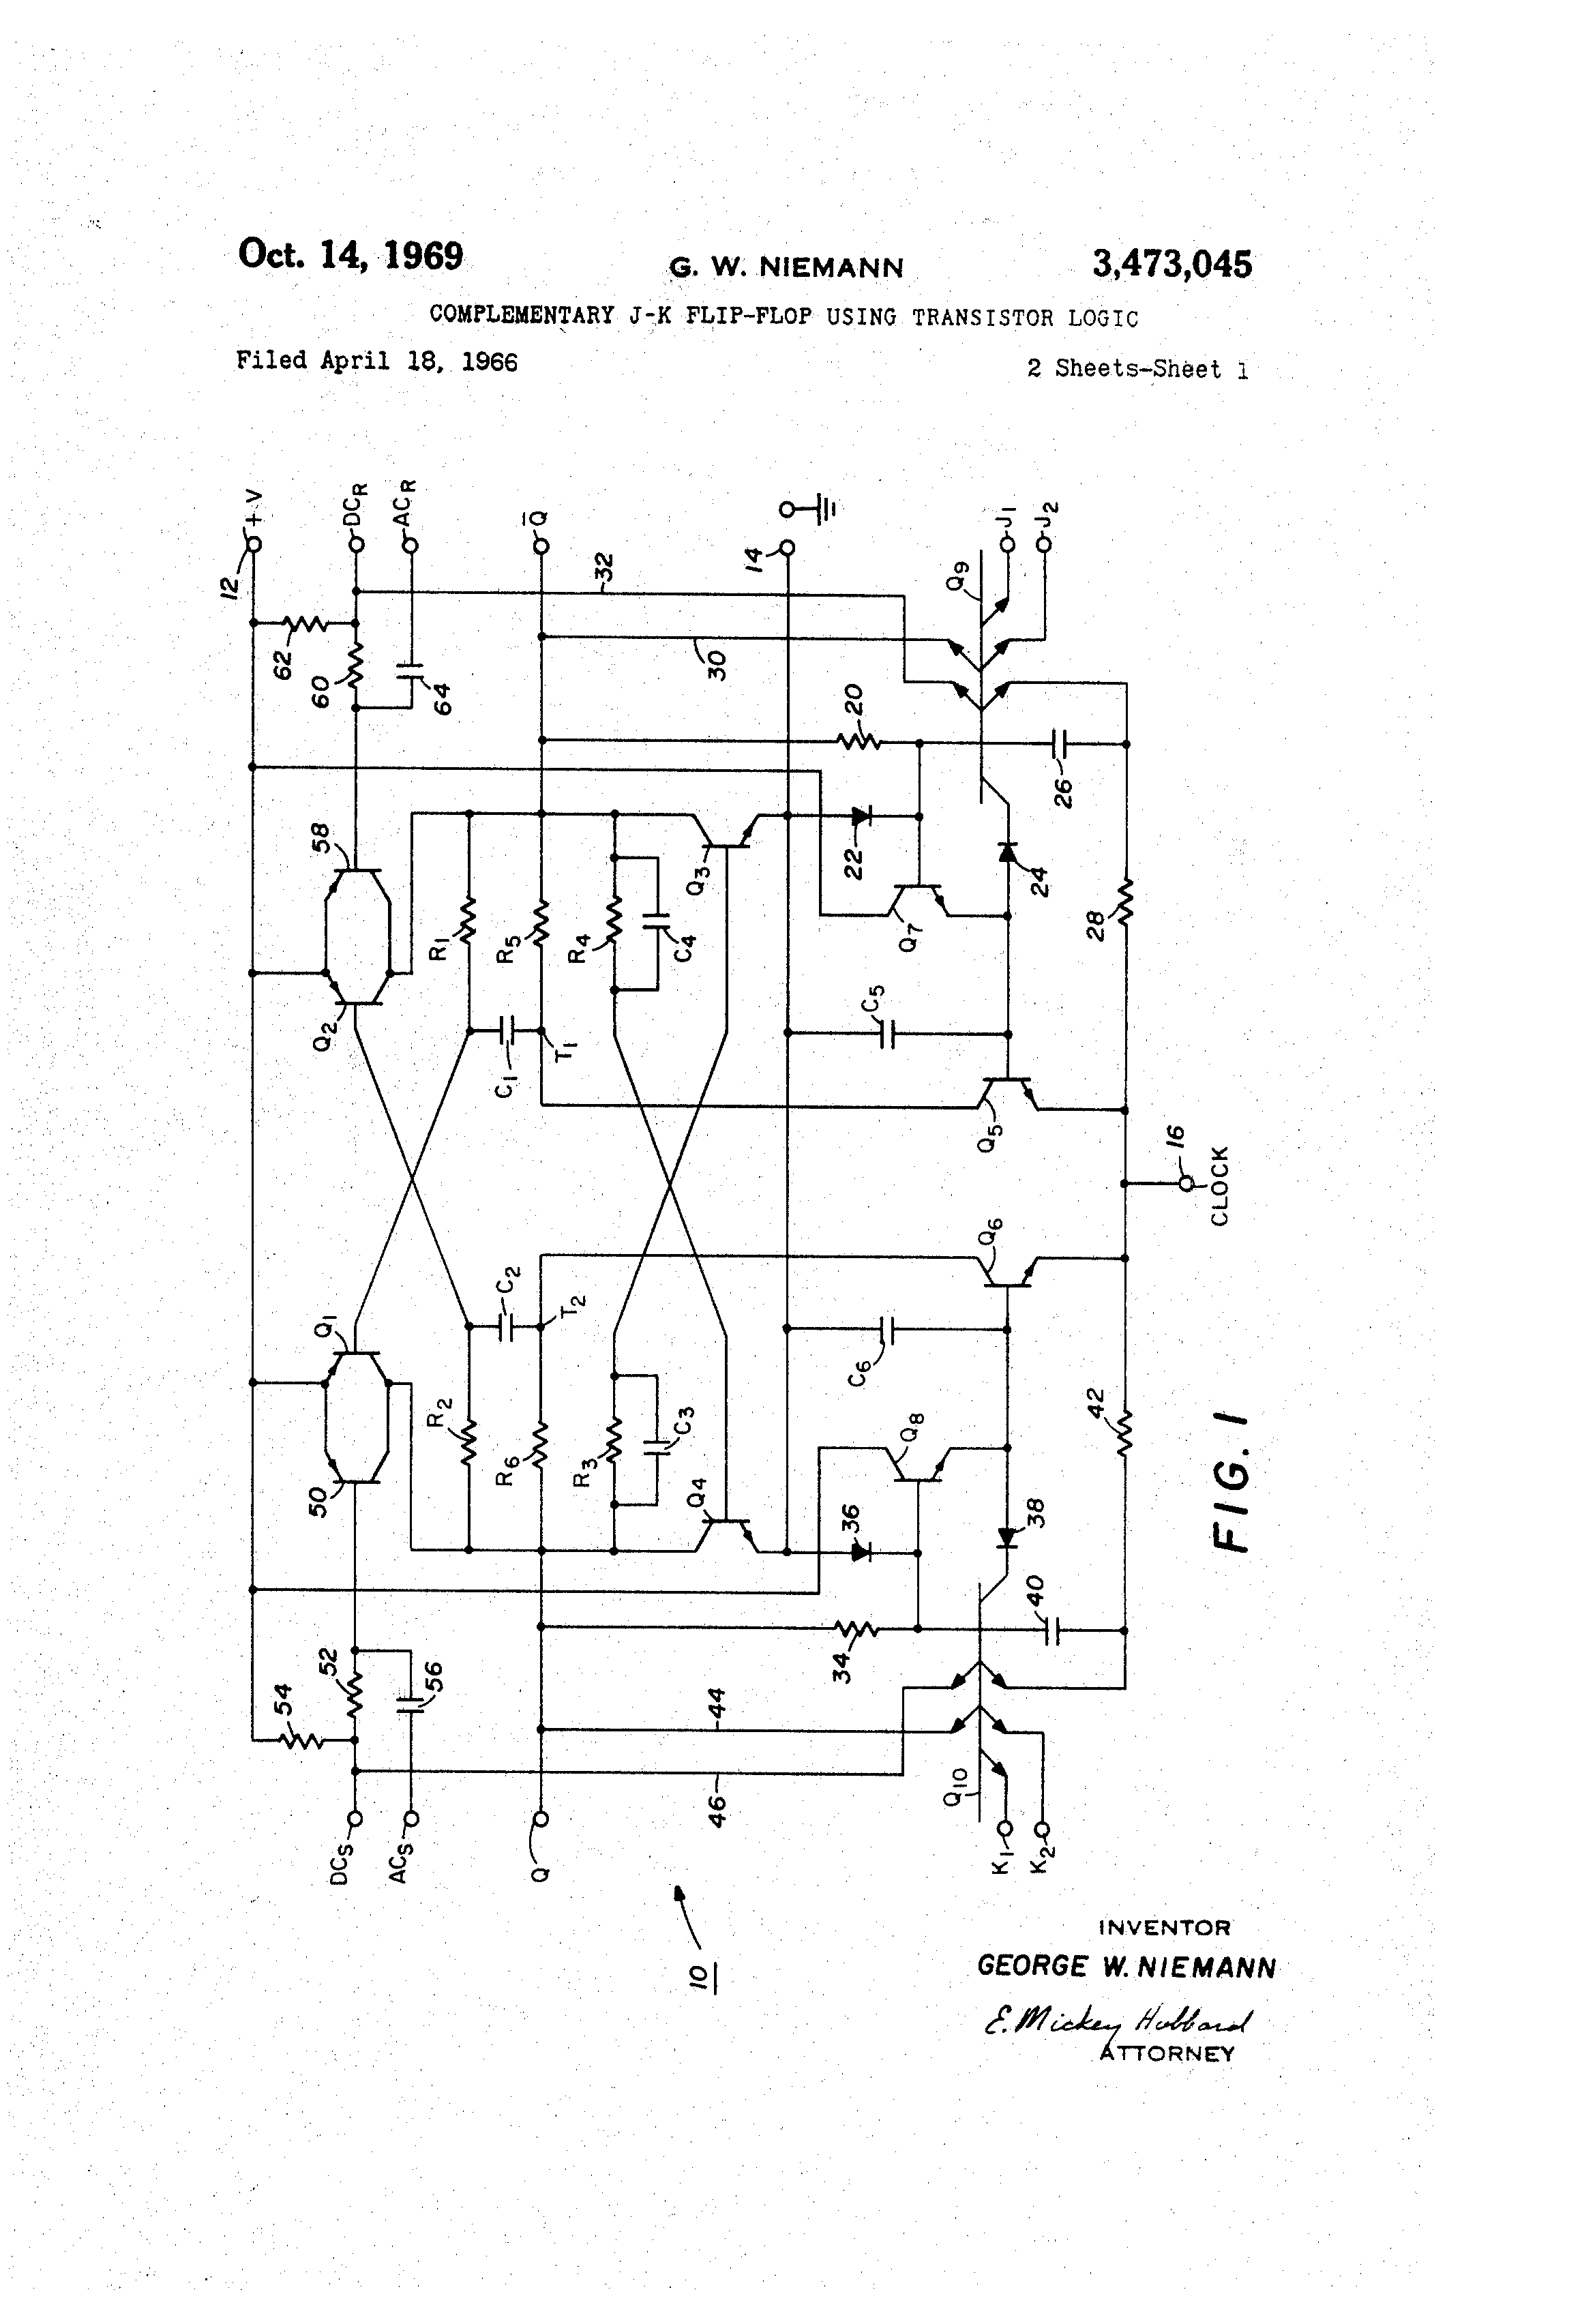 Jk Flip Flop Transistor Schematic Wiring Library Diagrams Light Sensor Switch Circuit Using Jkflipflop Eleccircuit Patent Us3473045 Complementary J K Characteristic Table